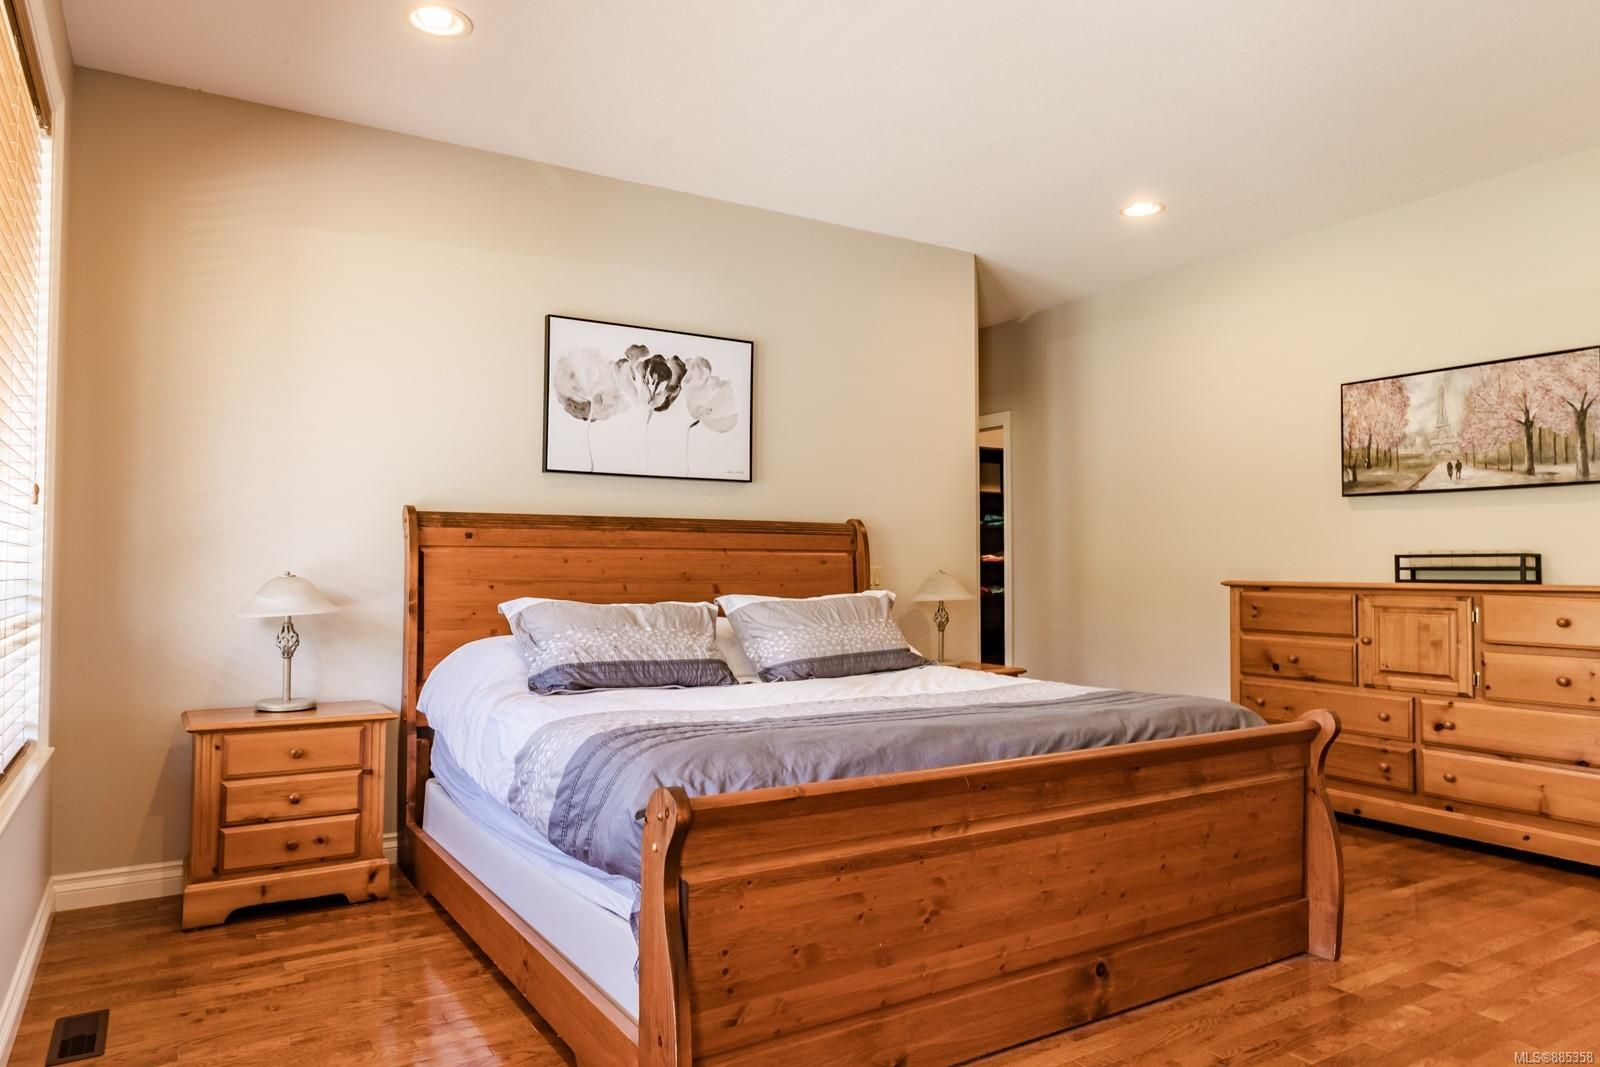 Photo 18: Photos: 2850 Peters Rd in : PQ Qualicum Beach House for sale (Parksville/Qualicum)  : MLS®# 885358